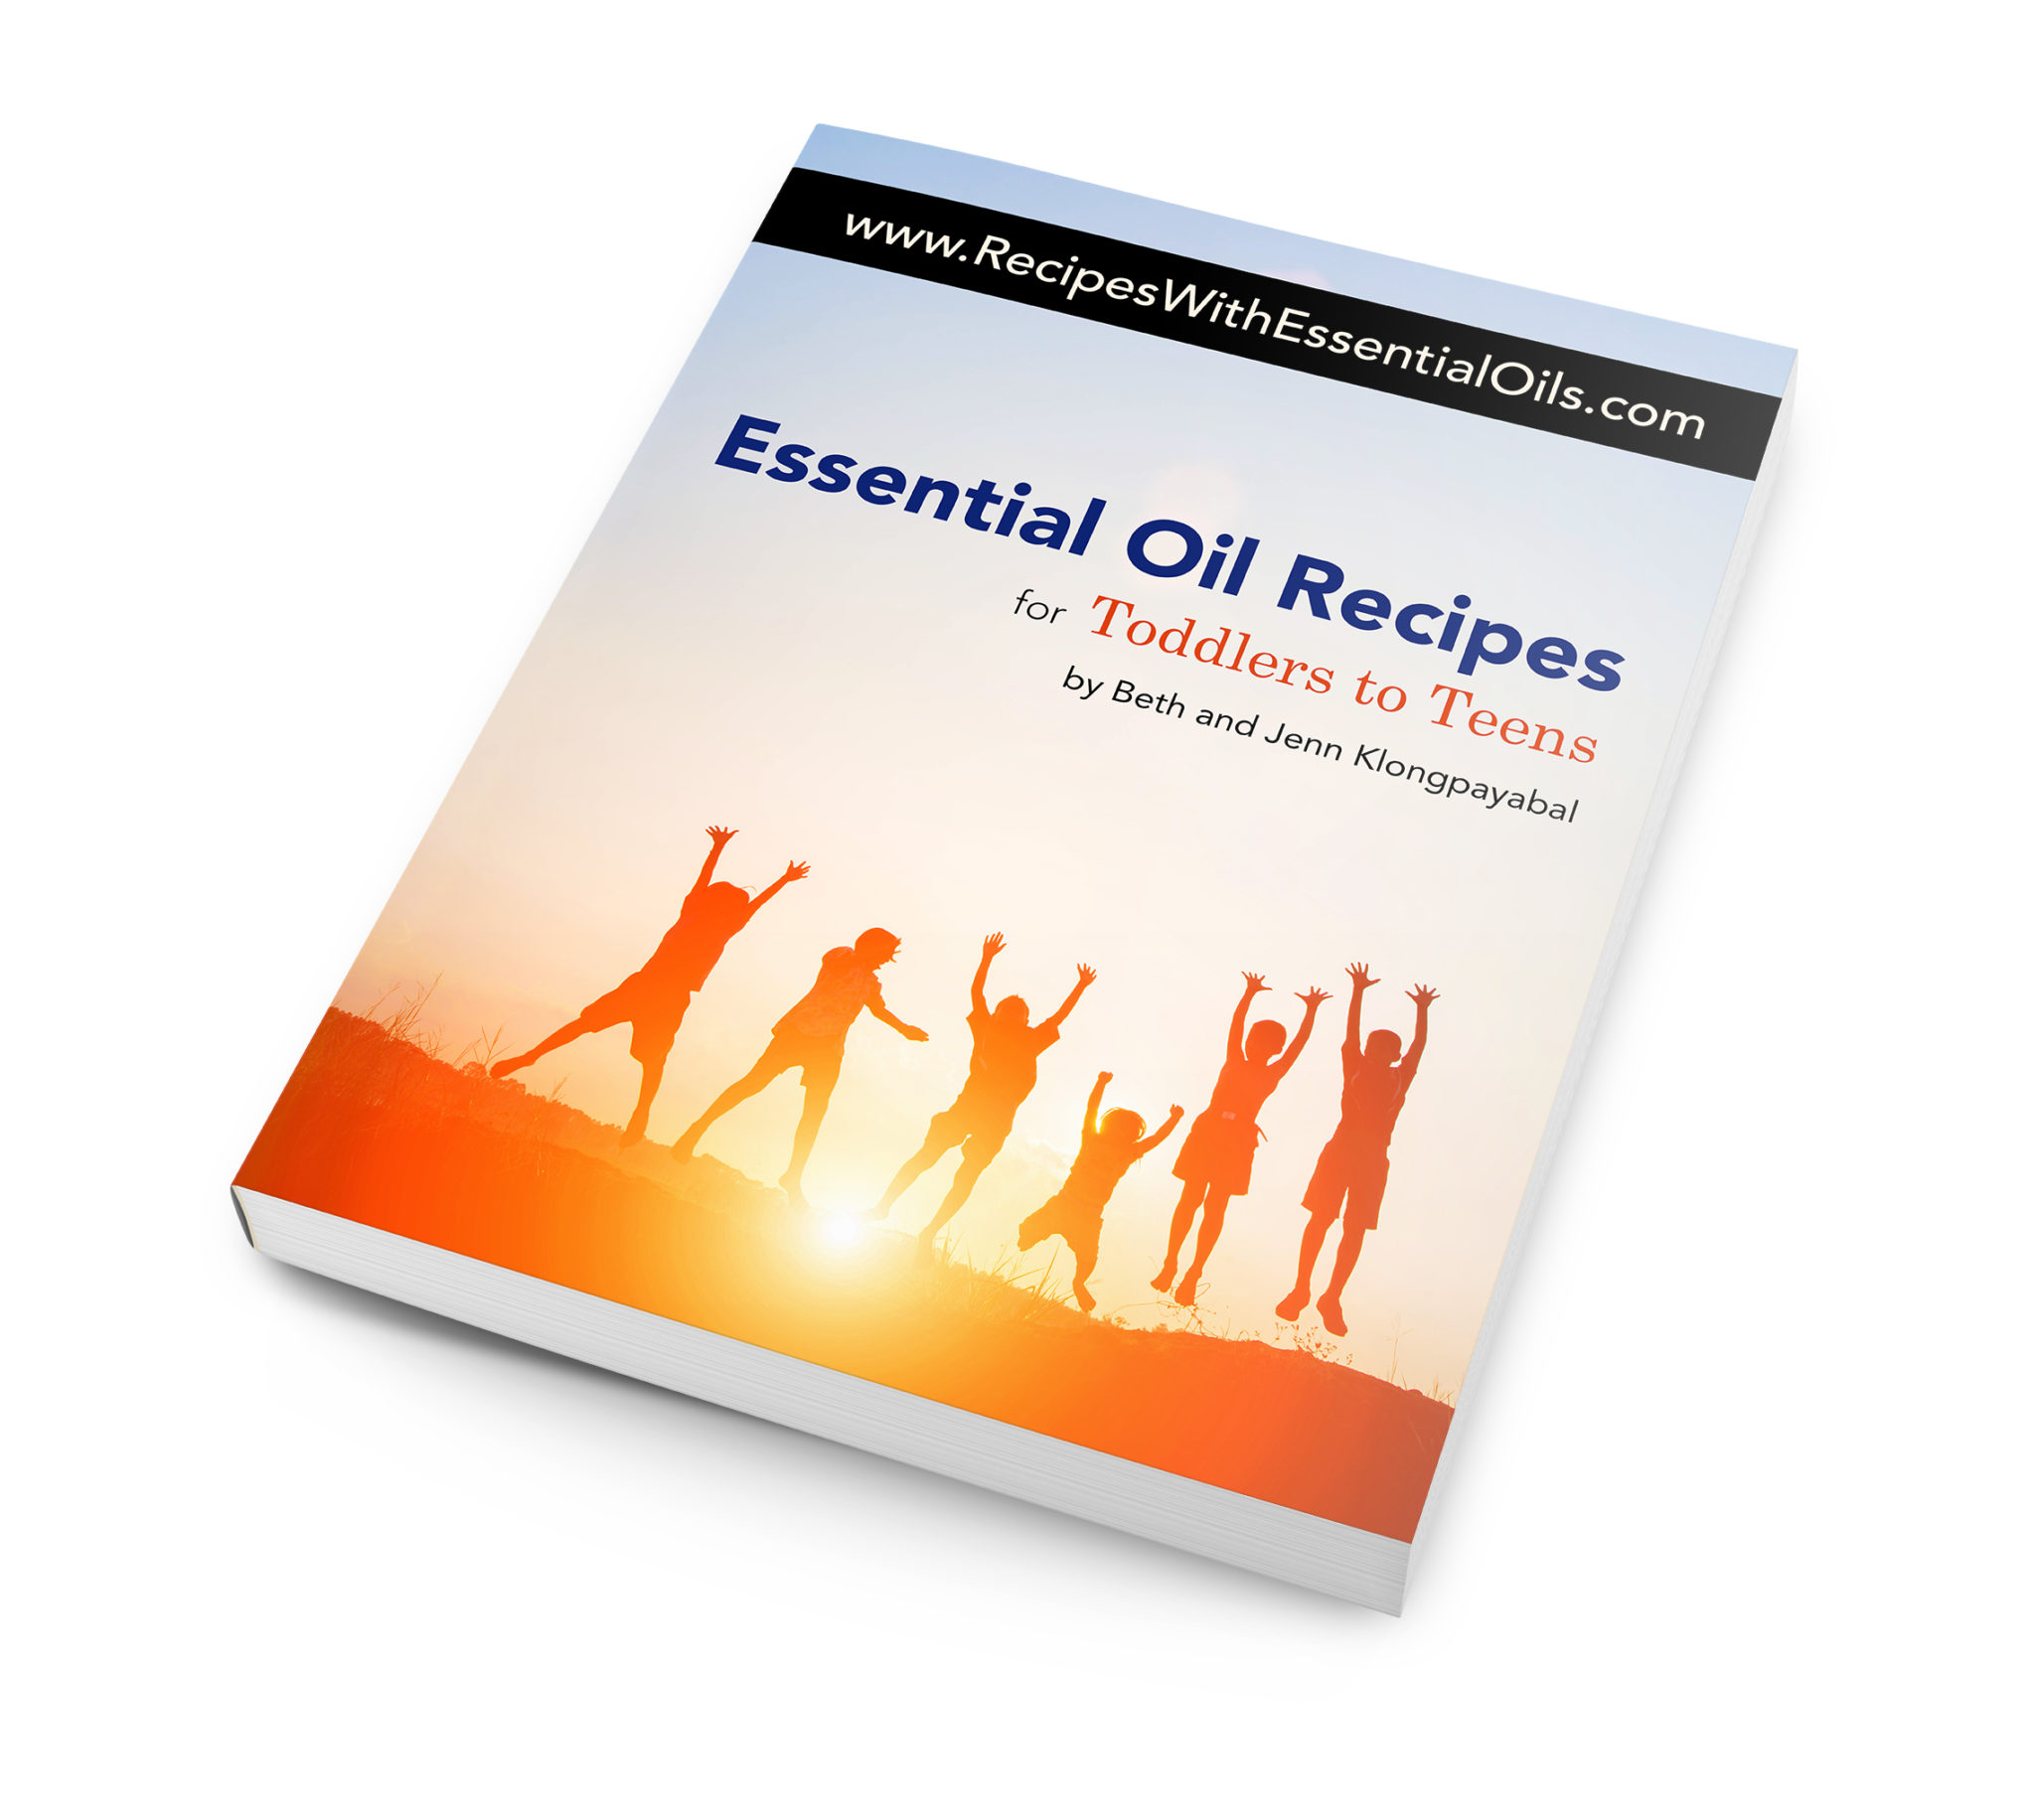 Essential oil recipes for toddlers to teens ebook recipes with essential oil recipes for toddlers and teens 2 fandeluxe Gallery